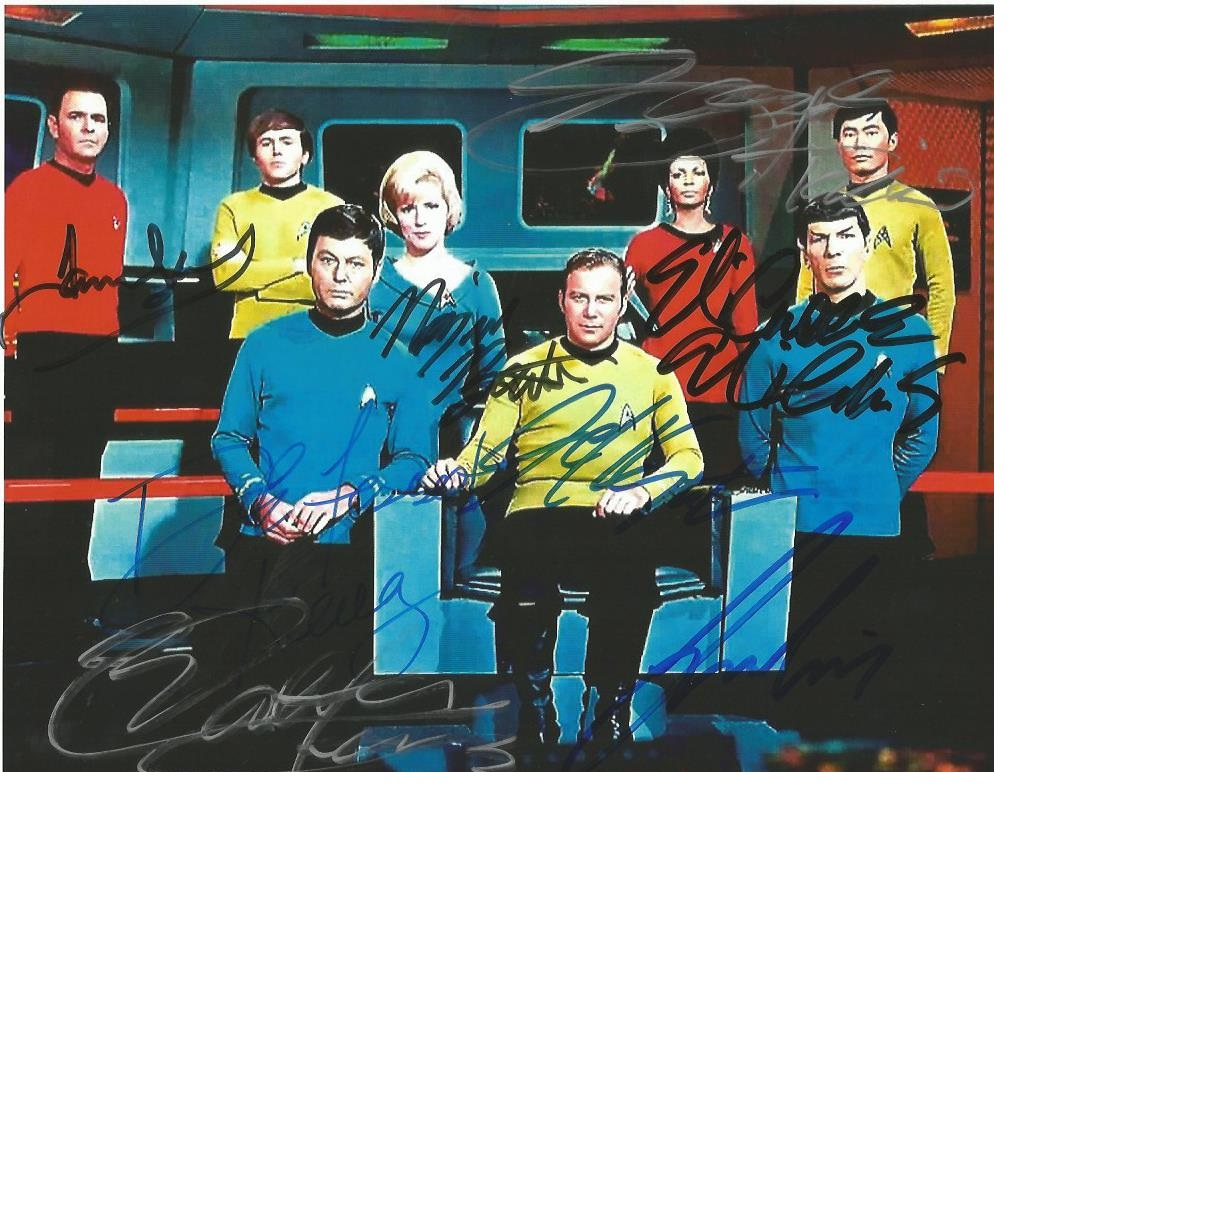 Lot 26 - Star Trek Incredible signed 10 x 8 colour photo. Autographed by William Shatner, Leonard Nimoy,